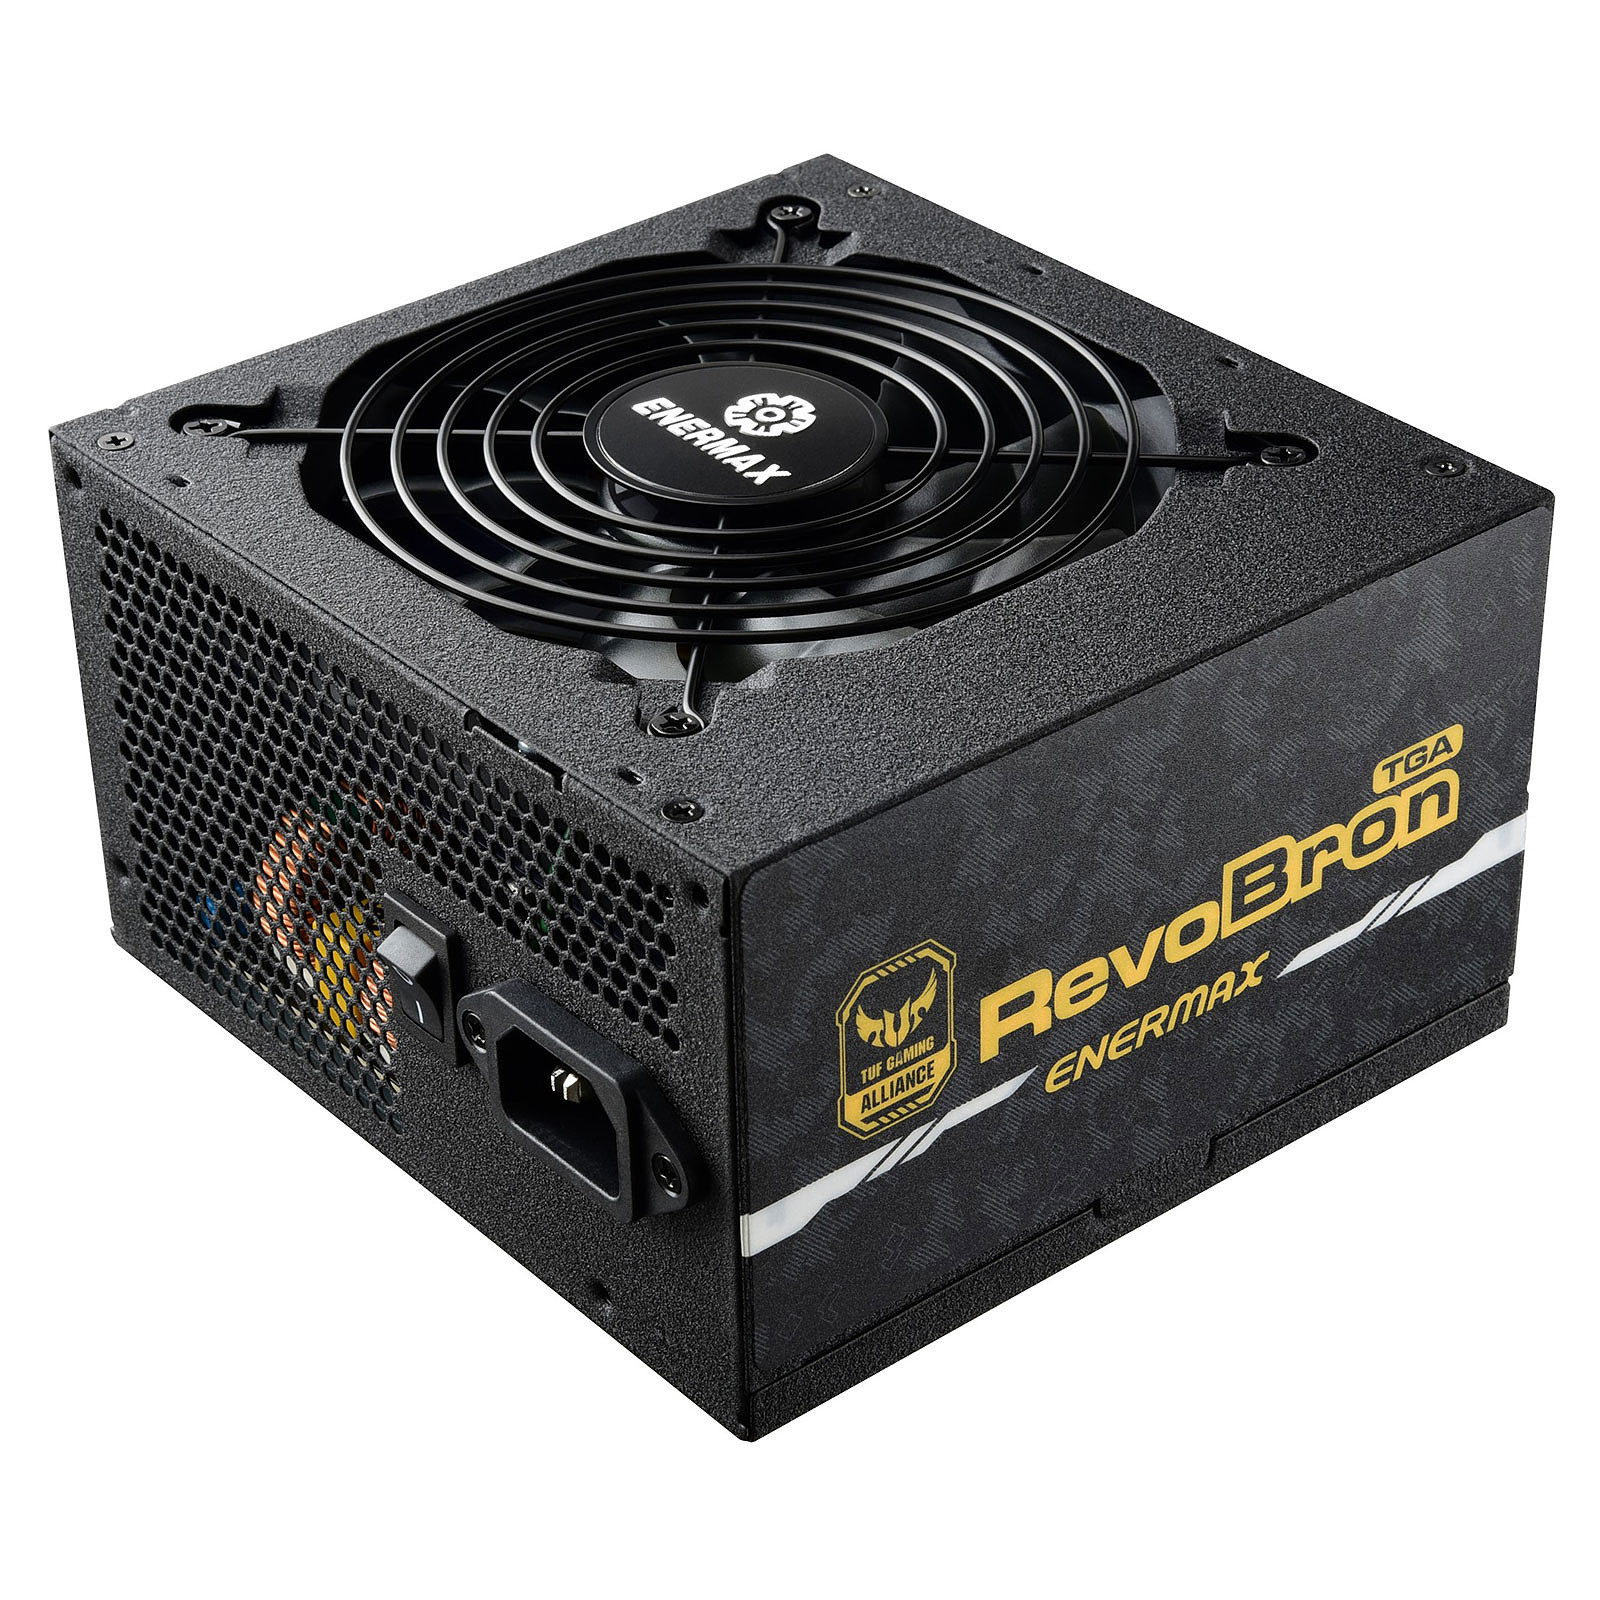 Enermax RevoBron TUF Gaming Alliance 500W